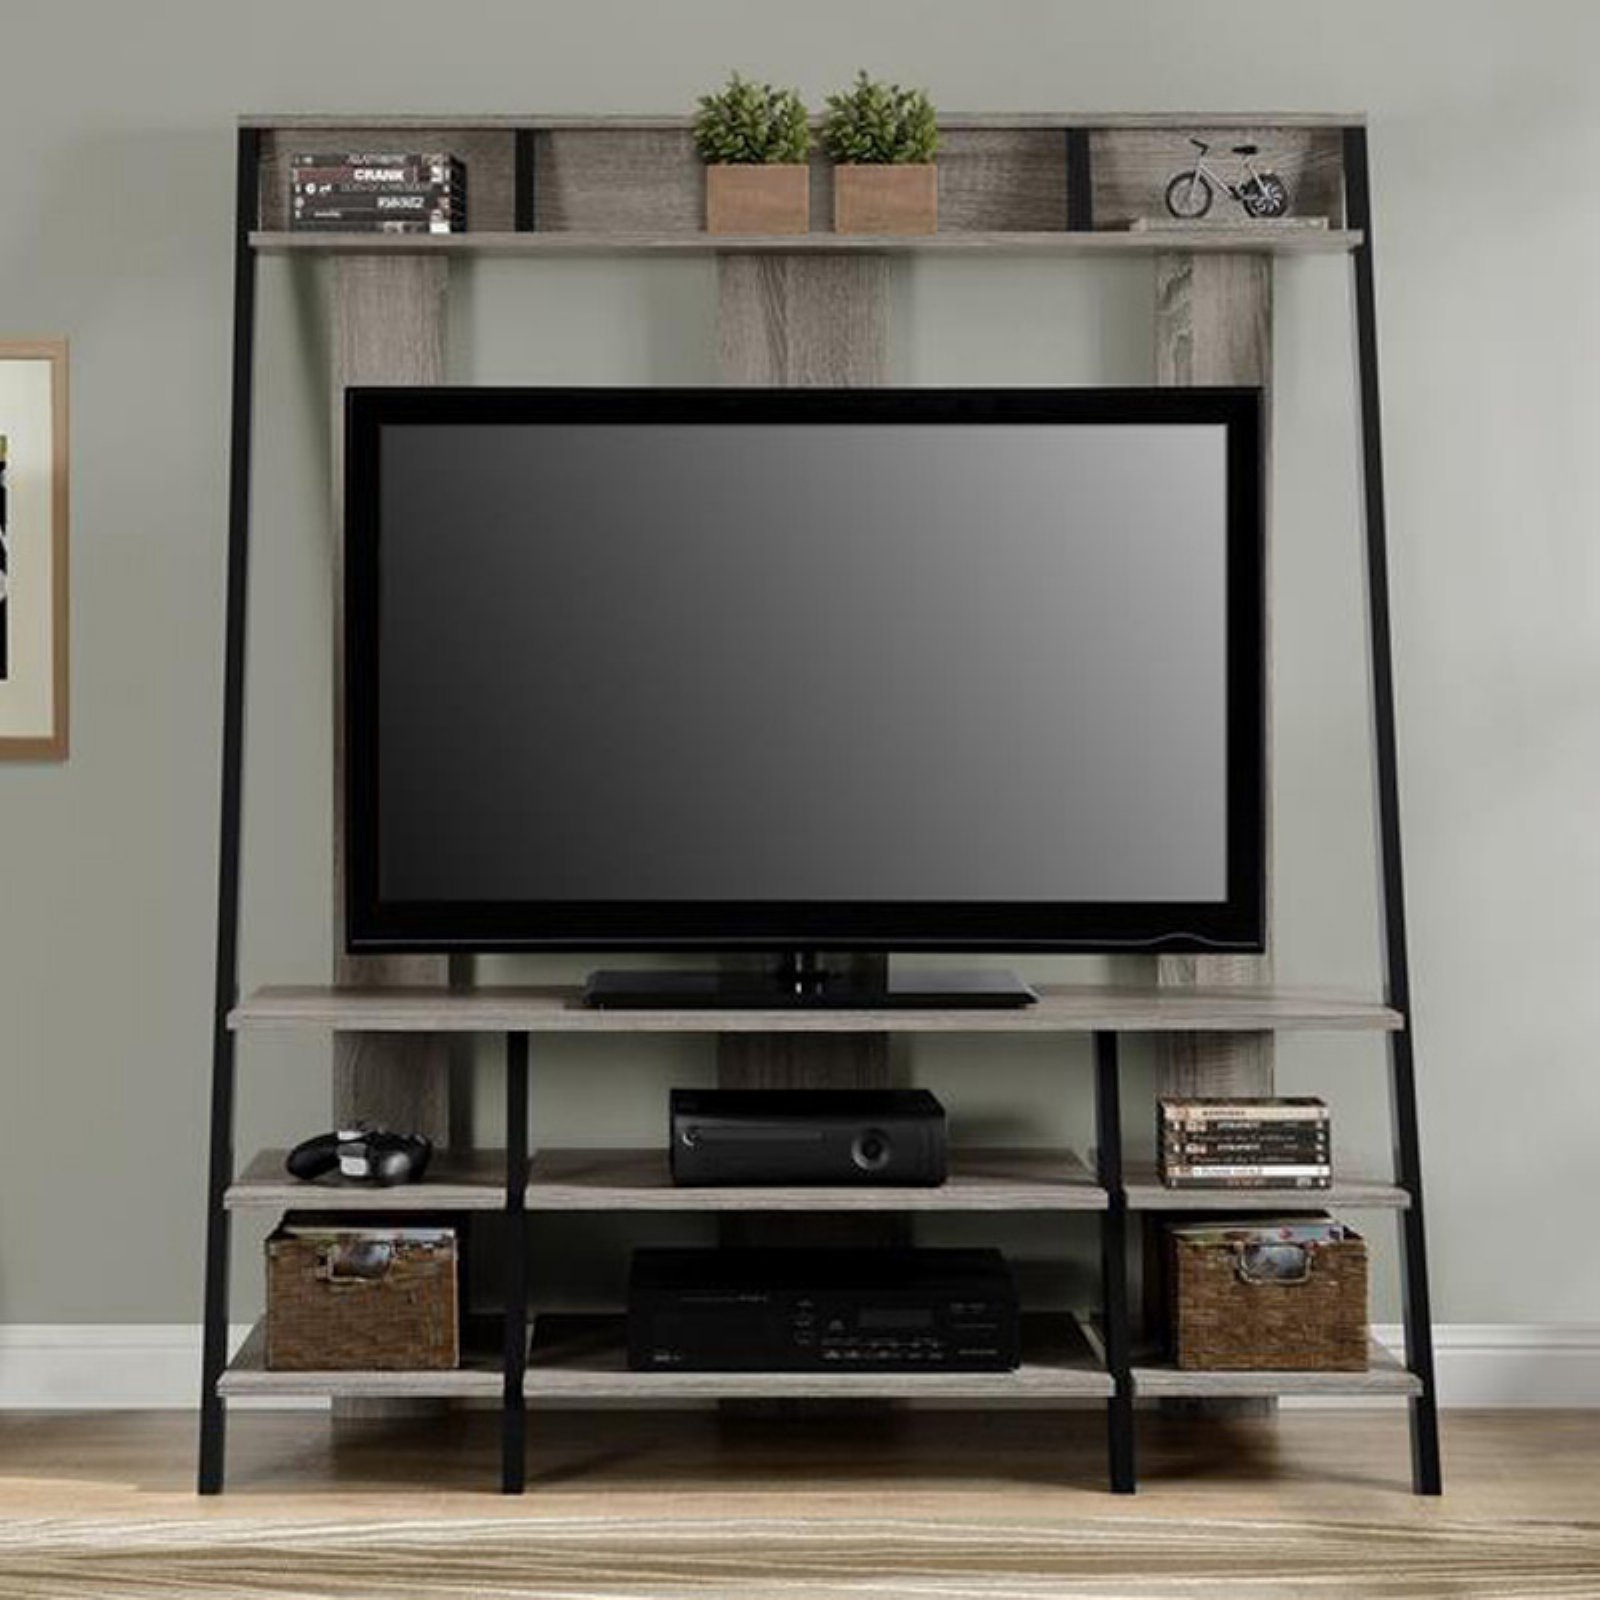 Ameriwood Home Dunnington Ladder Style Home Entertainment Center, Multiple Colors